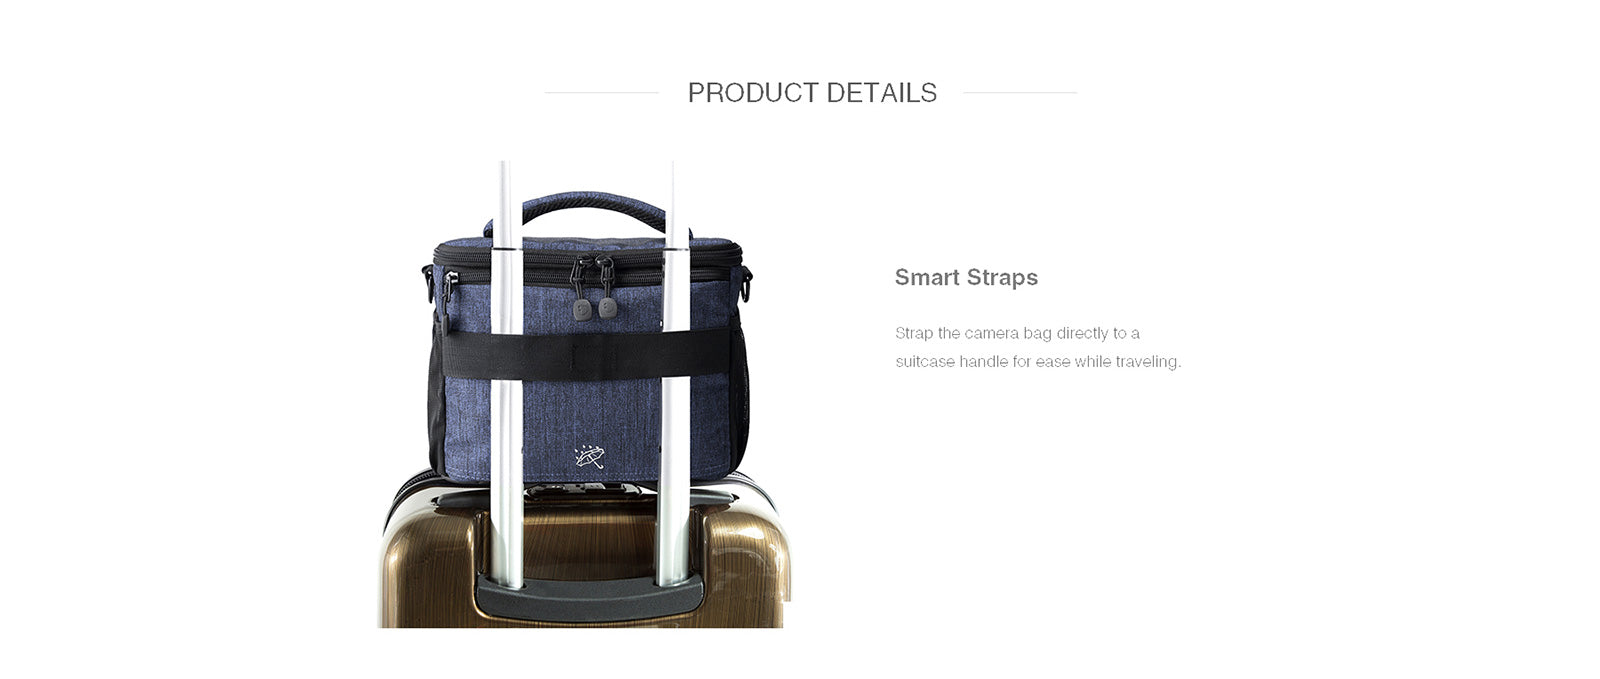 Smart straps: Strap the camera bag directly to a suitcase handle for ease while traveling.